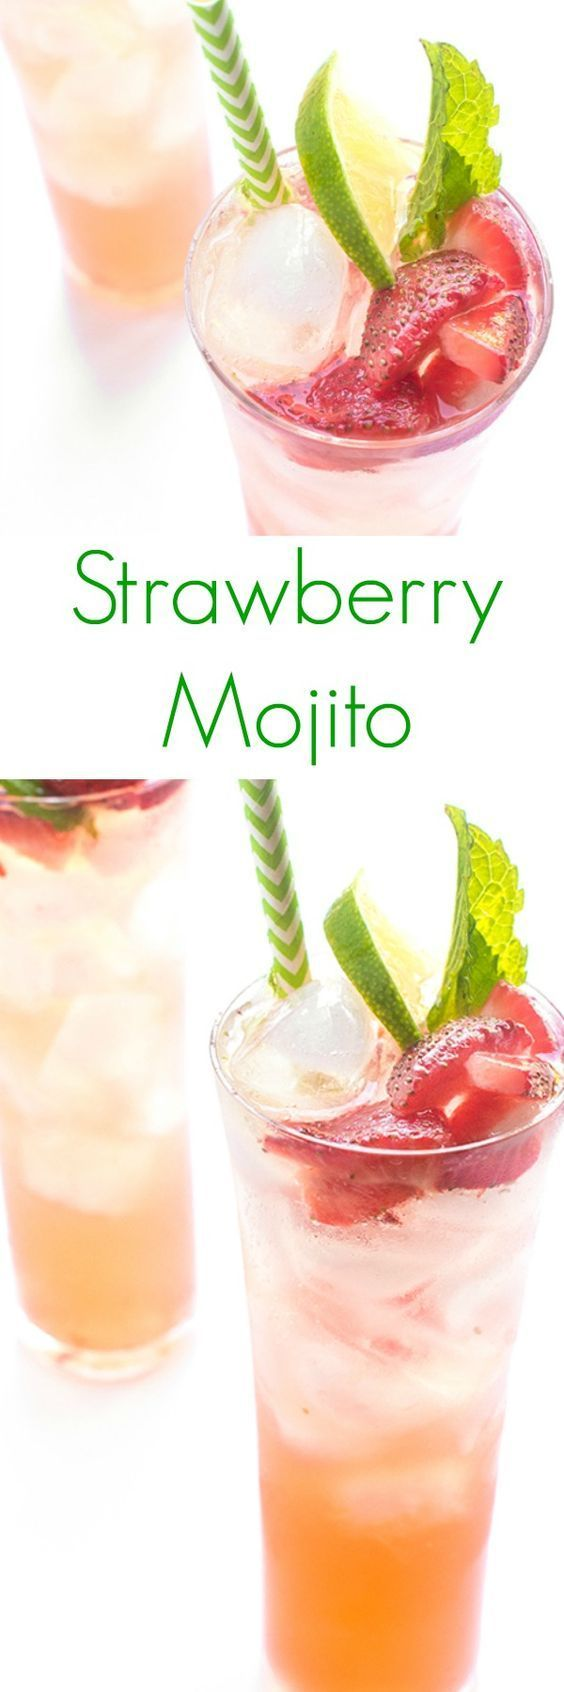 The 25+ best Strawberry mojito ideas on Pinterest ...